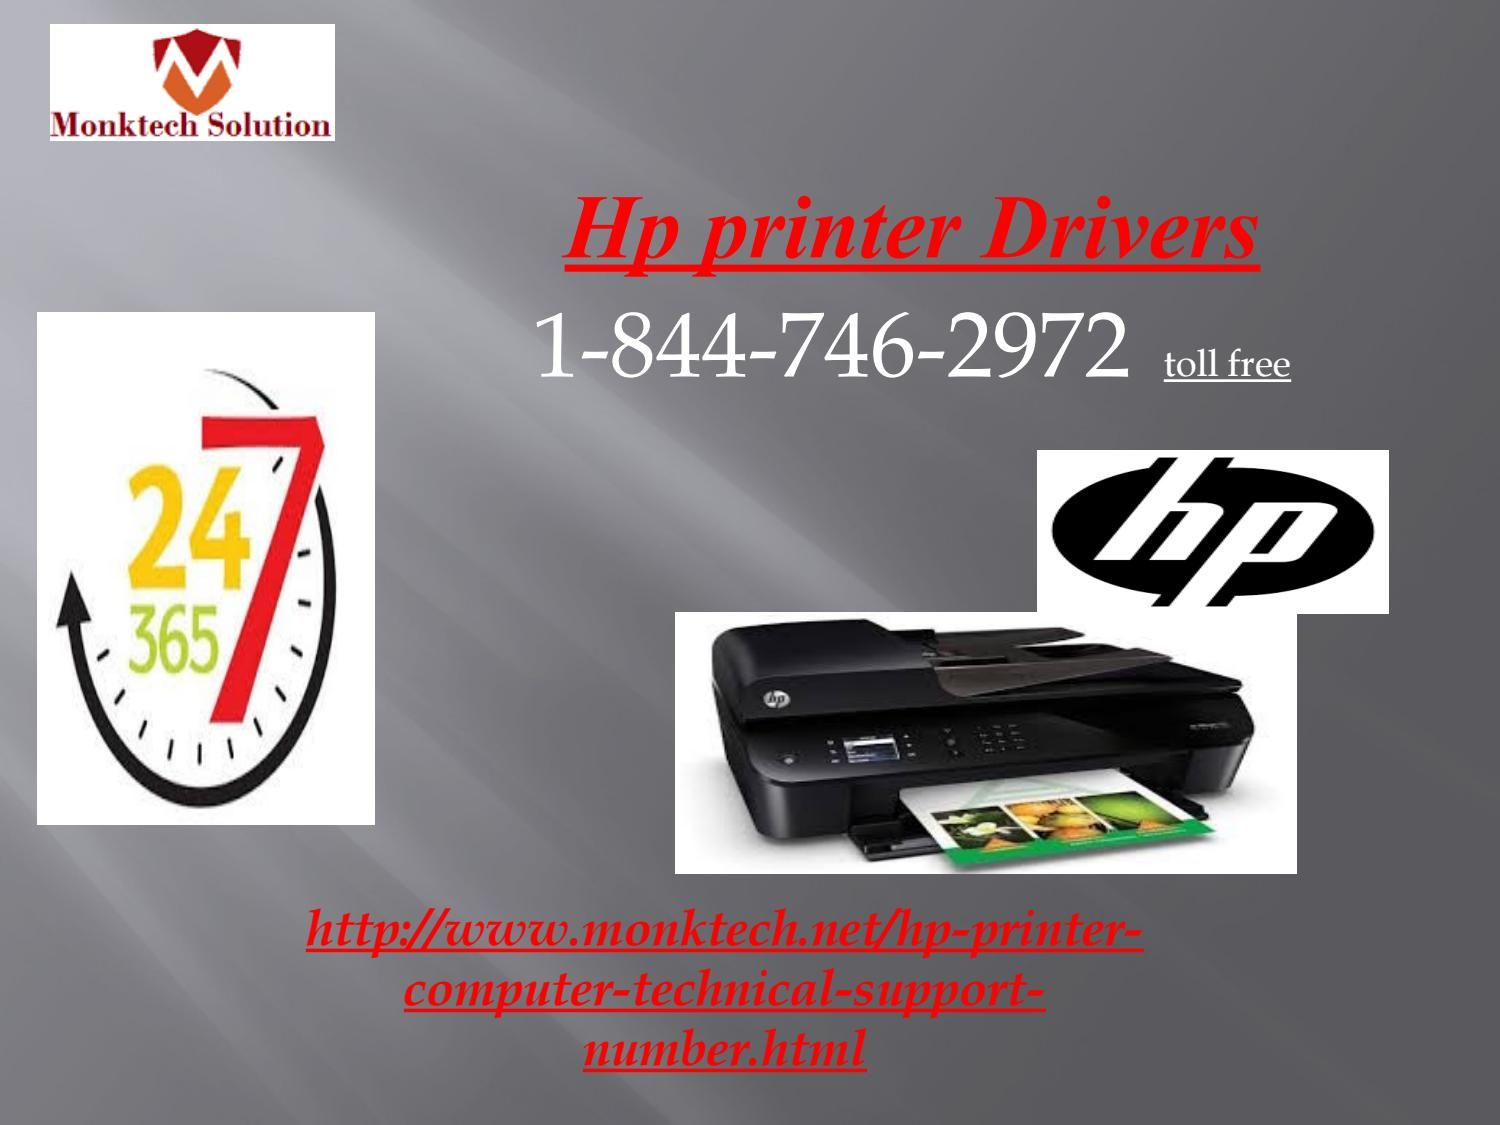 Is ,hp support good to take? On 1-844-746-2972  If you have a HP printer and is looking for the qualitative, quick, freebie, and limitless printing services for it then you are on the right spot. To nail it, you need to come by your telephone and setting up your fingers down on your telephone keypad and call up the callable number 1-844-746-2972 to avail a wide variety of HP Printer Support services anytime. Hereinafter, phoning mode of service can render you the bundles of bumper services…